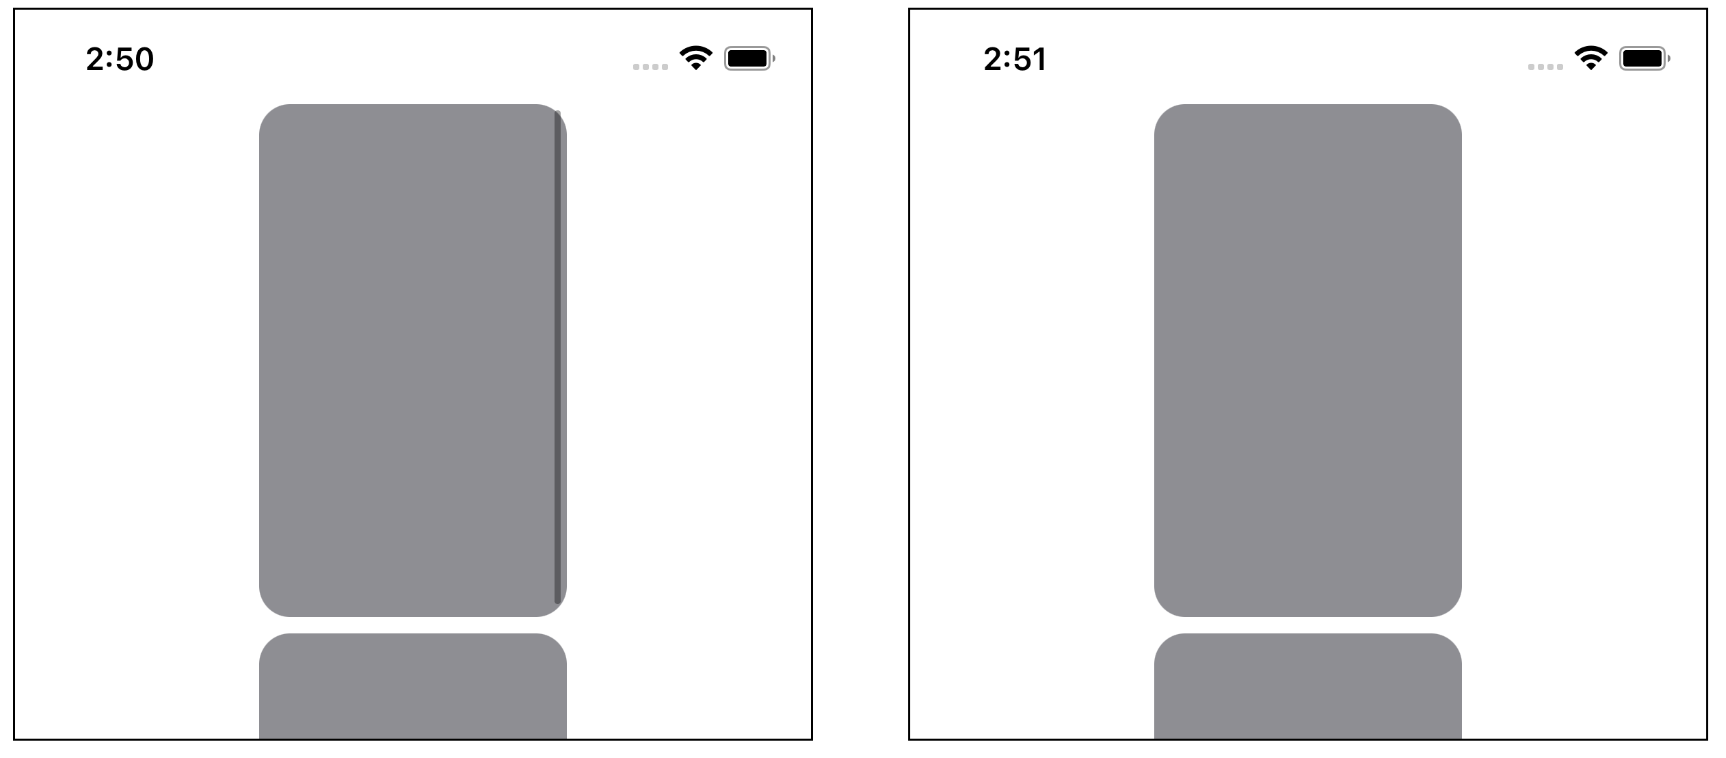 With and without the scroll bar